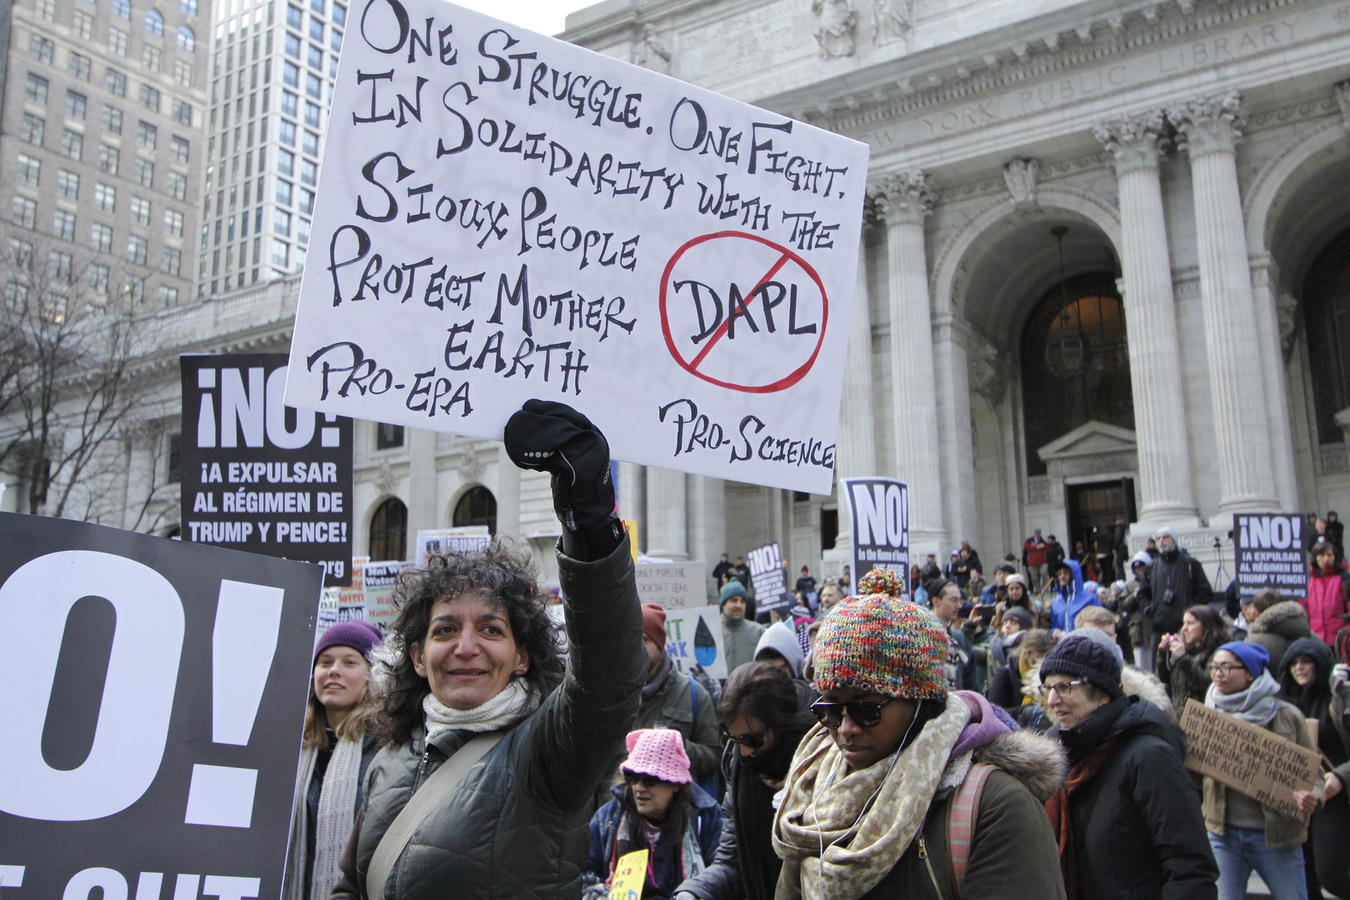 Other Protests March 4th for Standing Rock NYC 3/4/17